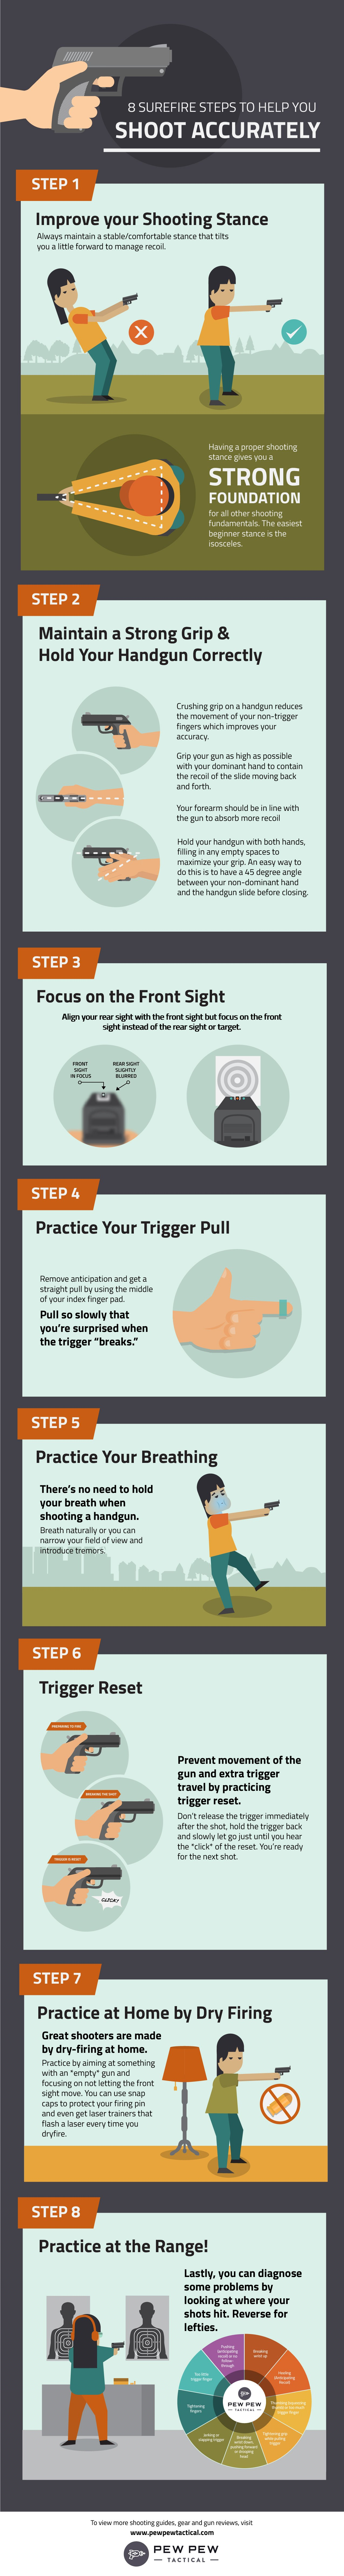 Infographic 8 surefire steps to help you shoot accurately pew pew 8 steps on how to shoot accurately infographic altavistaventures Images